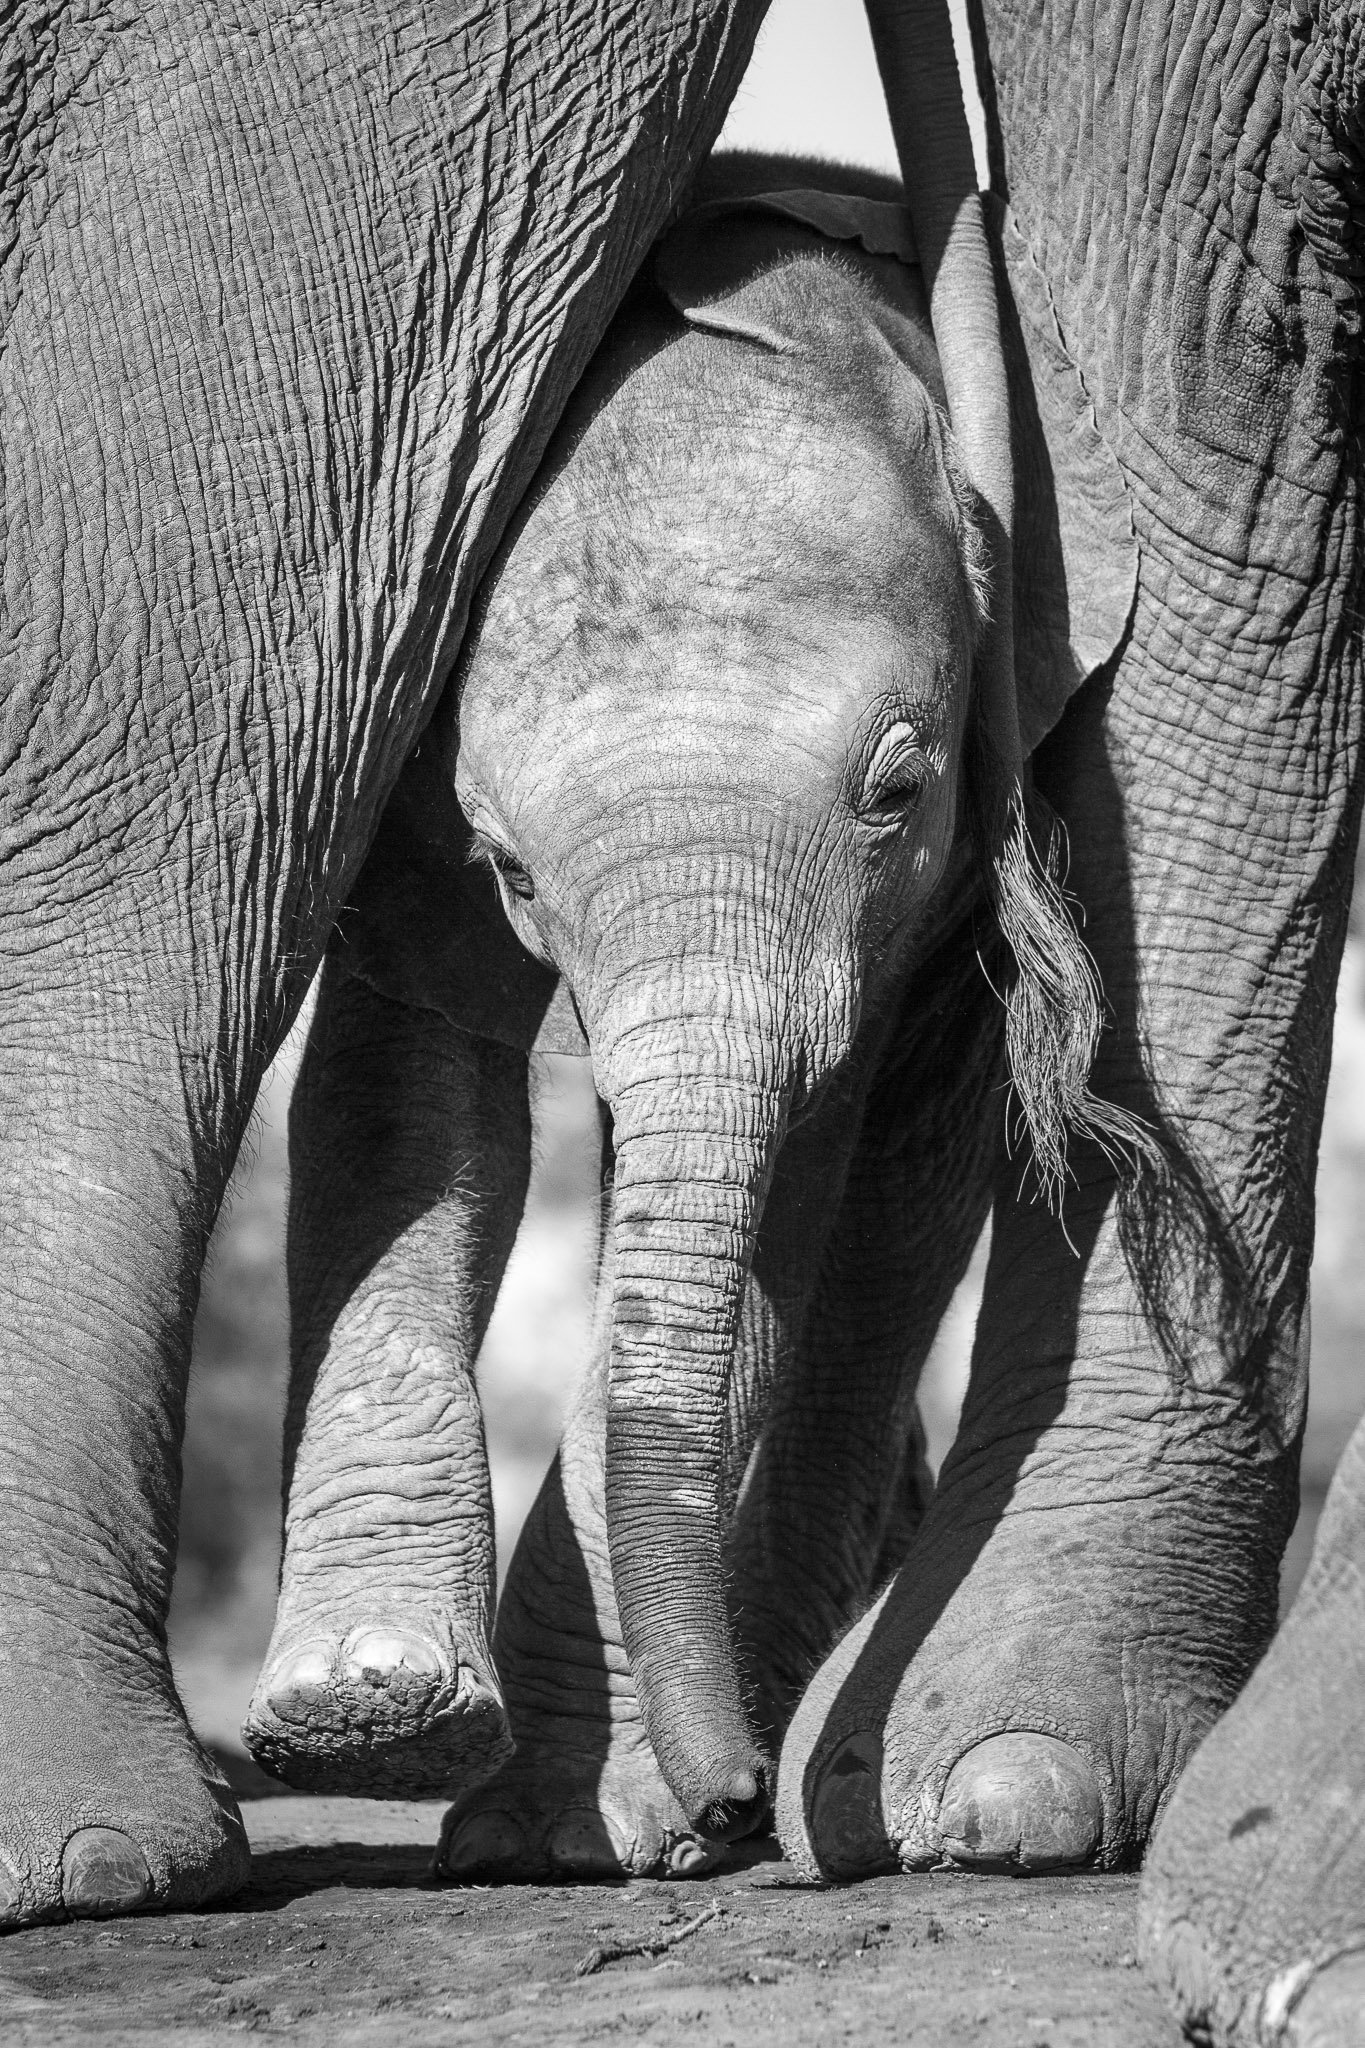 An elephant calf squeezes between the legs of two adults